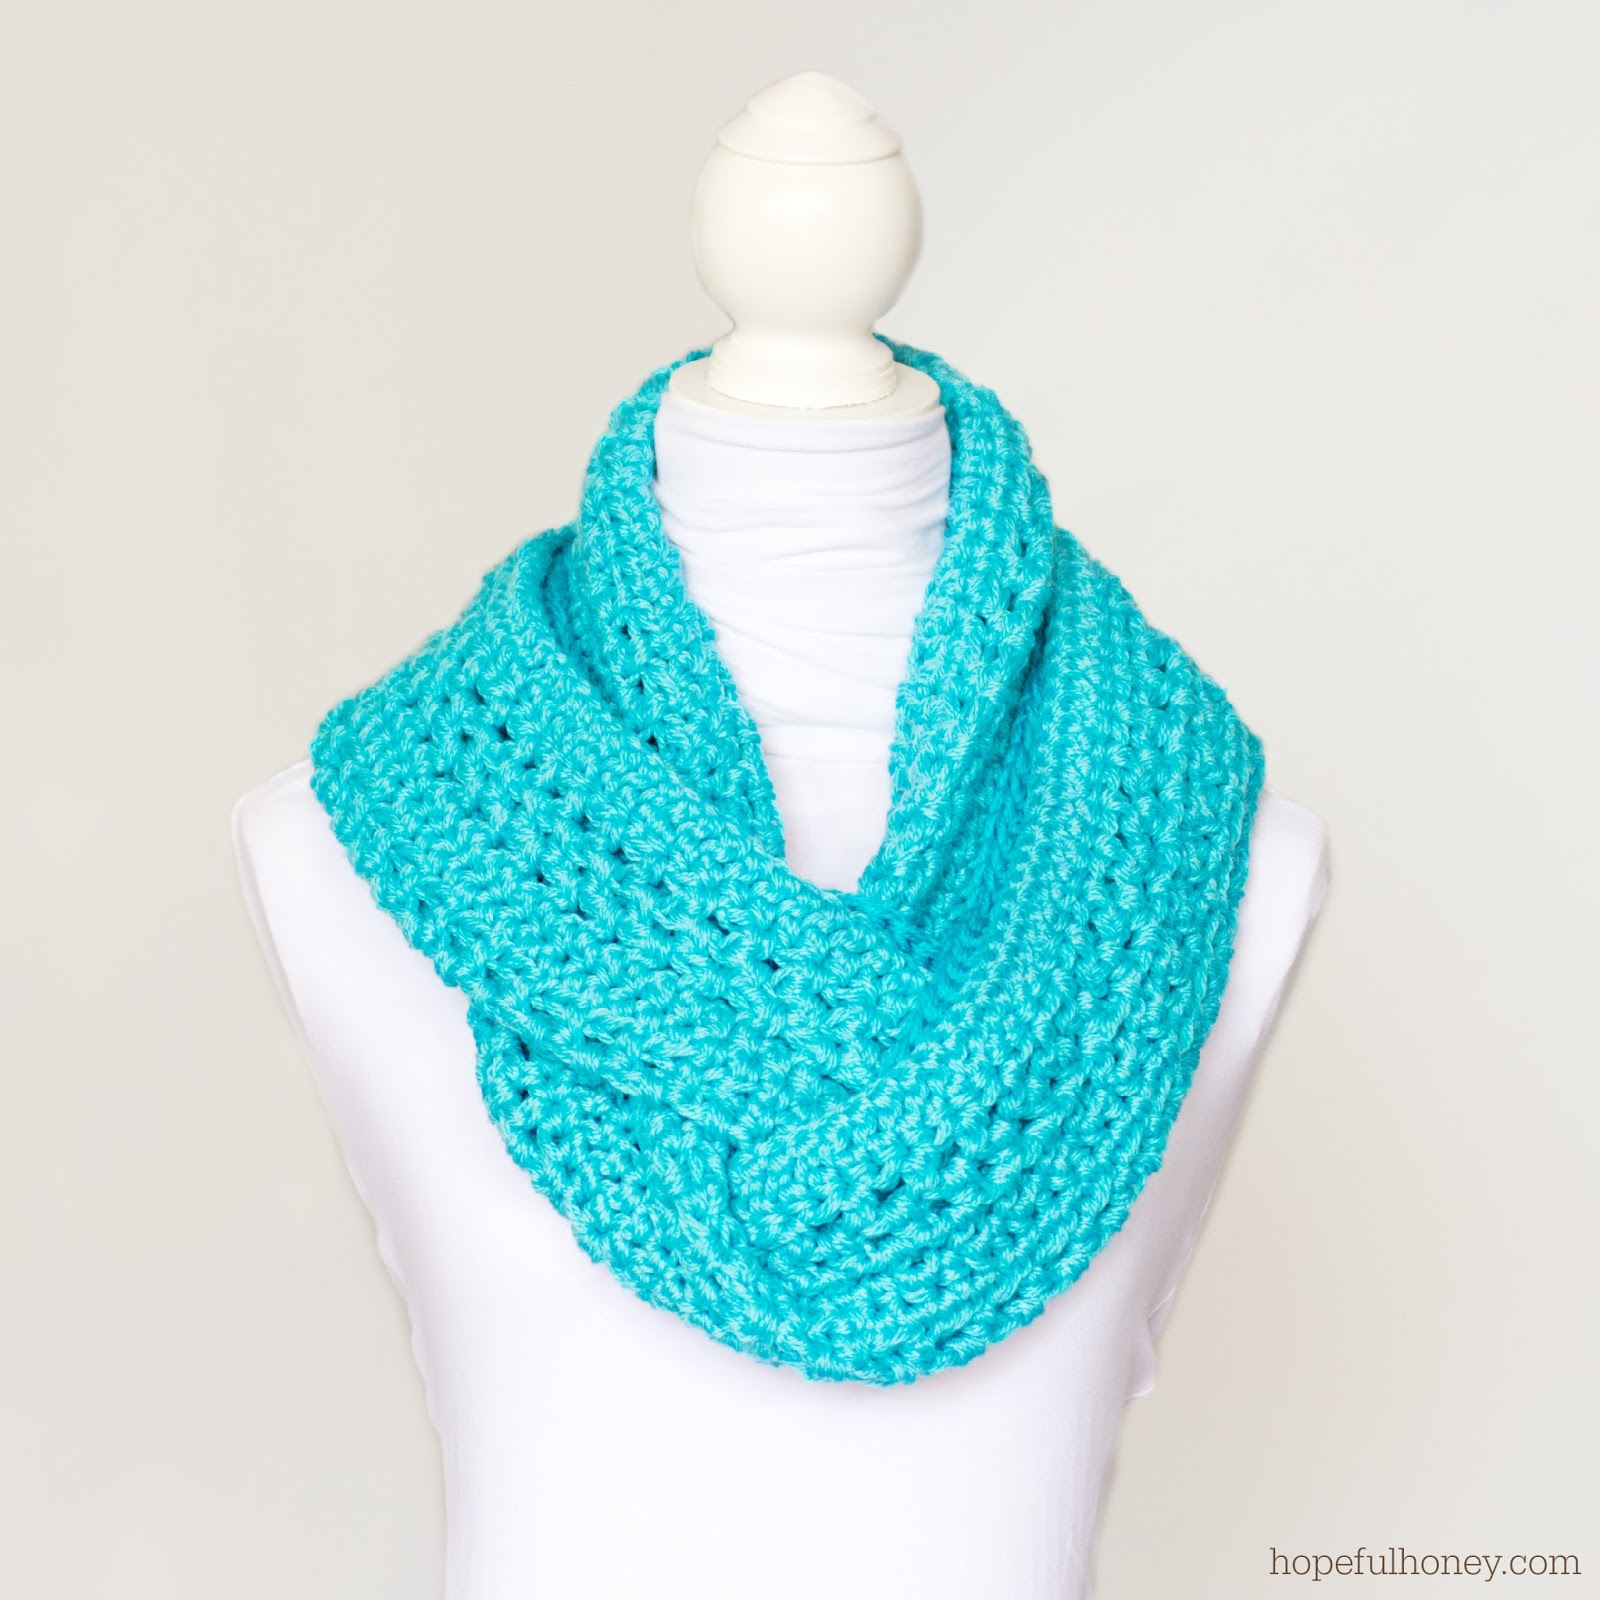 Crochet Basic Patterns : ... Honey Craft, Crochet, Create: Basic Circle Scarf Crochet Pattern